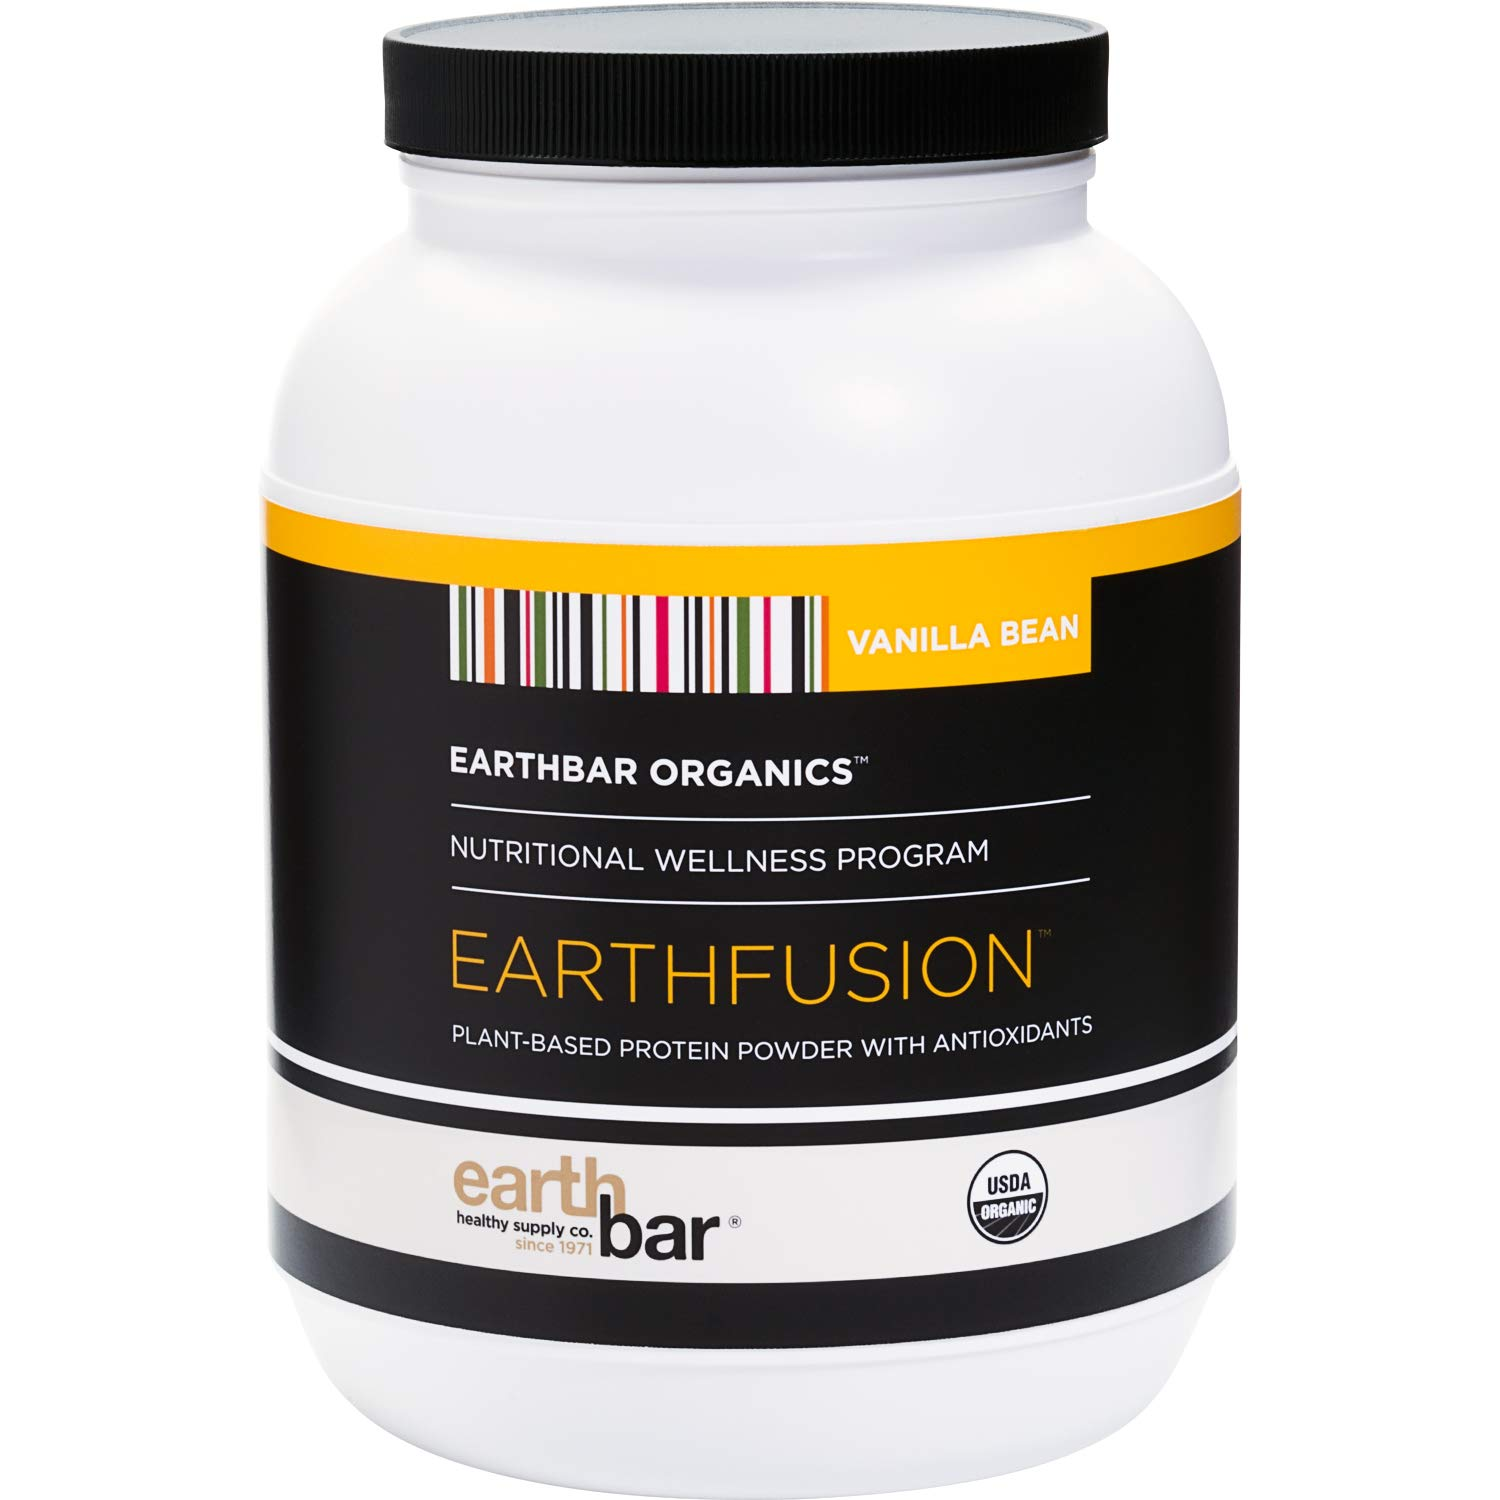 Earthbar Earthfusion Vegan Plant-Based Protein Powder with Antioxidants (2lb, Vanilla Bean)